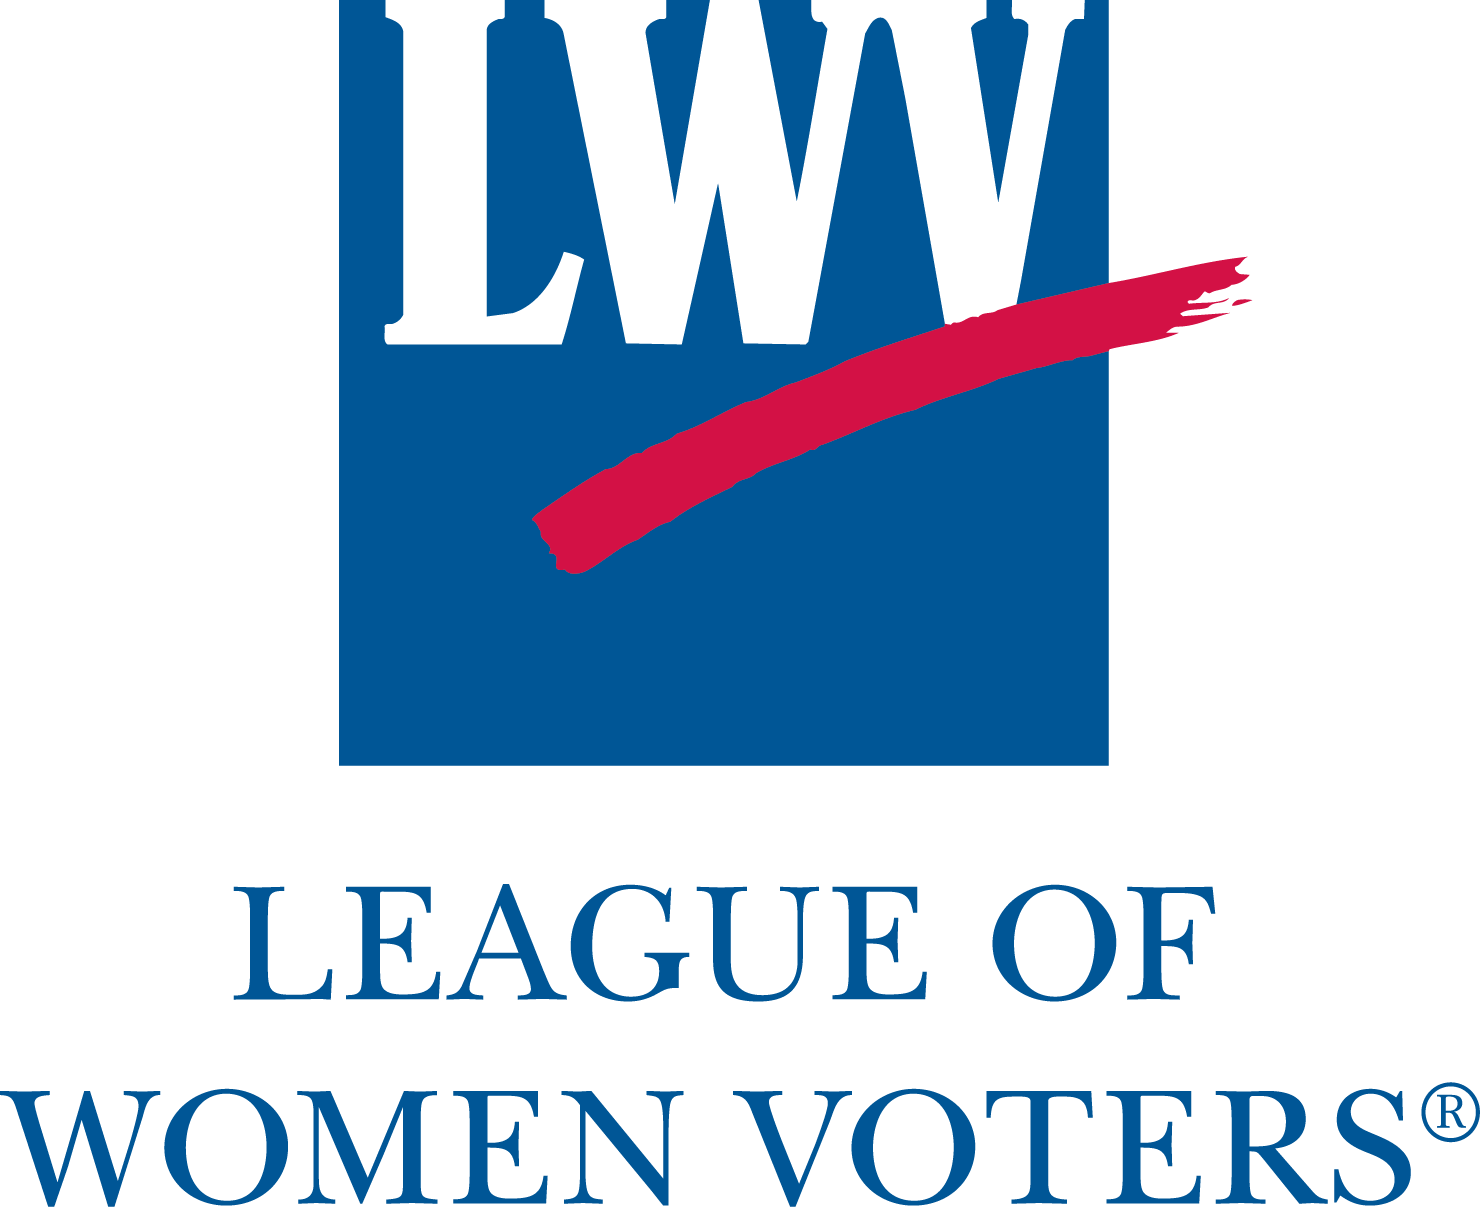 League of Women Voters.png